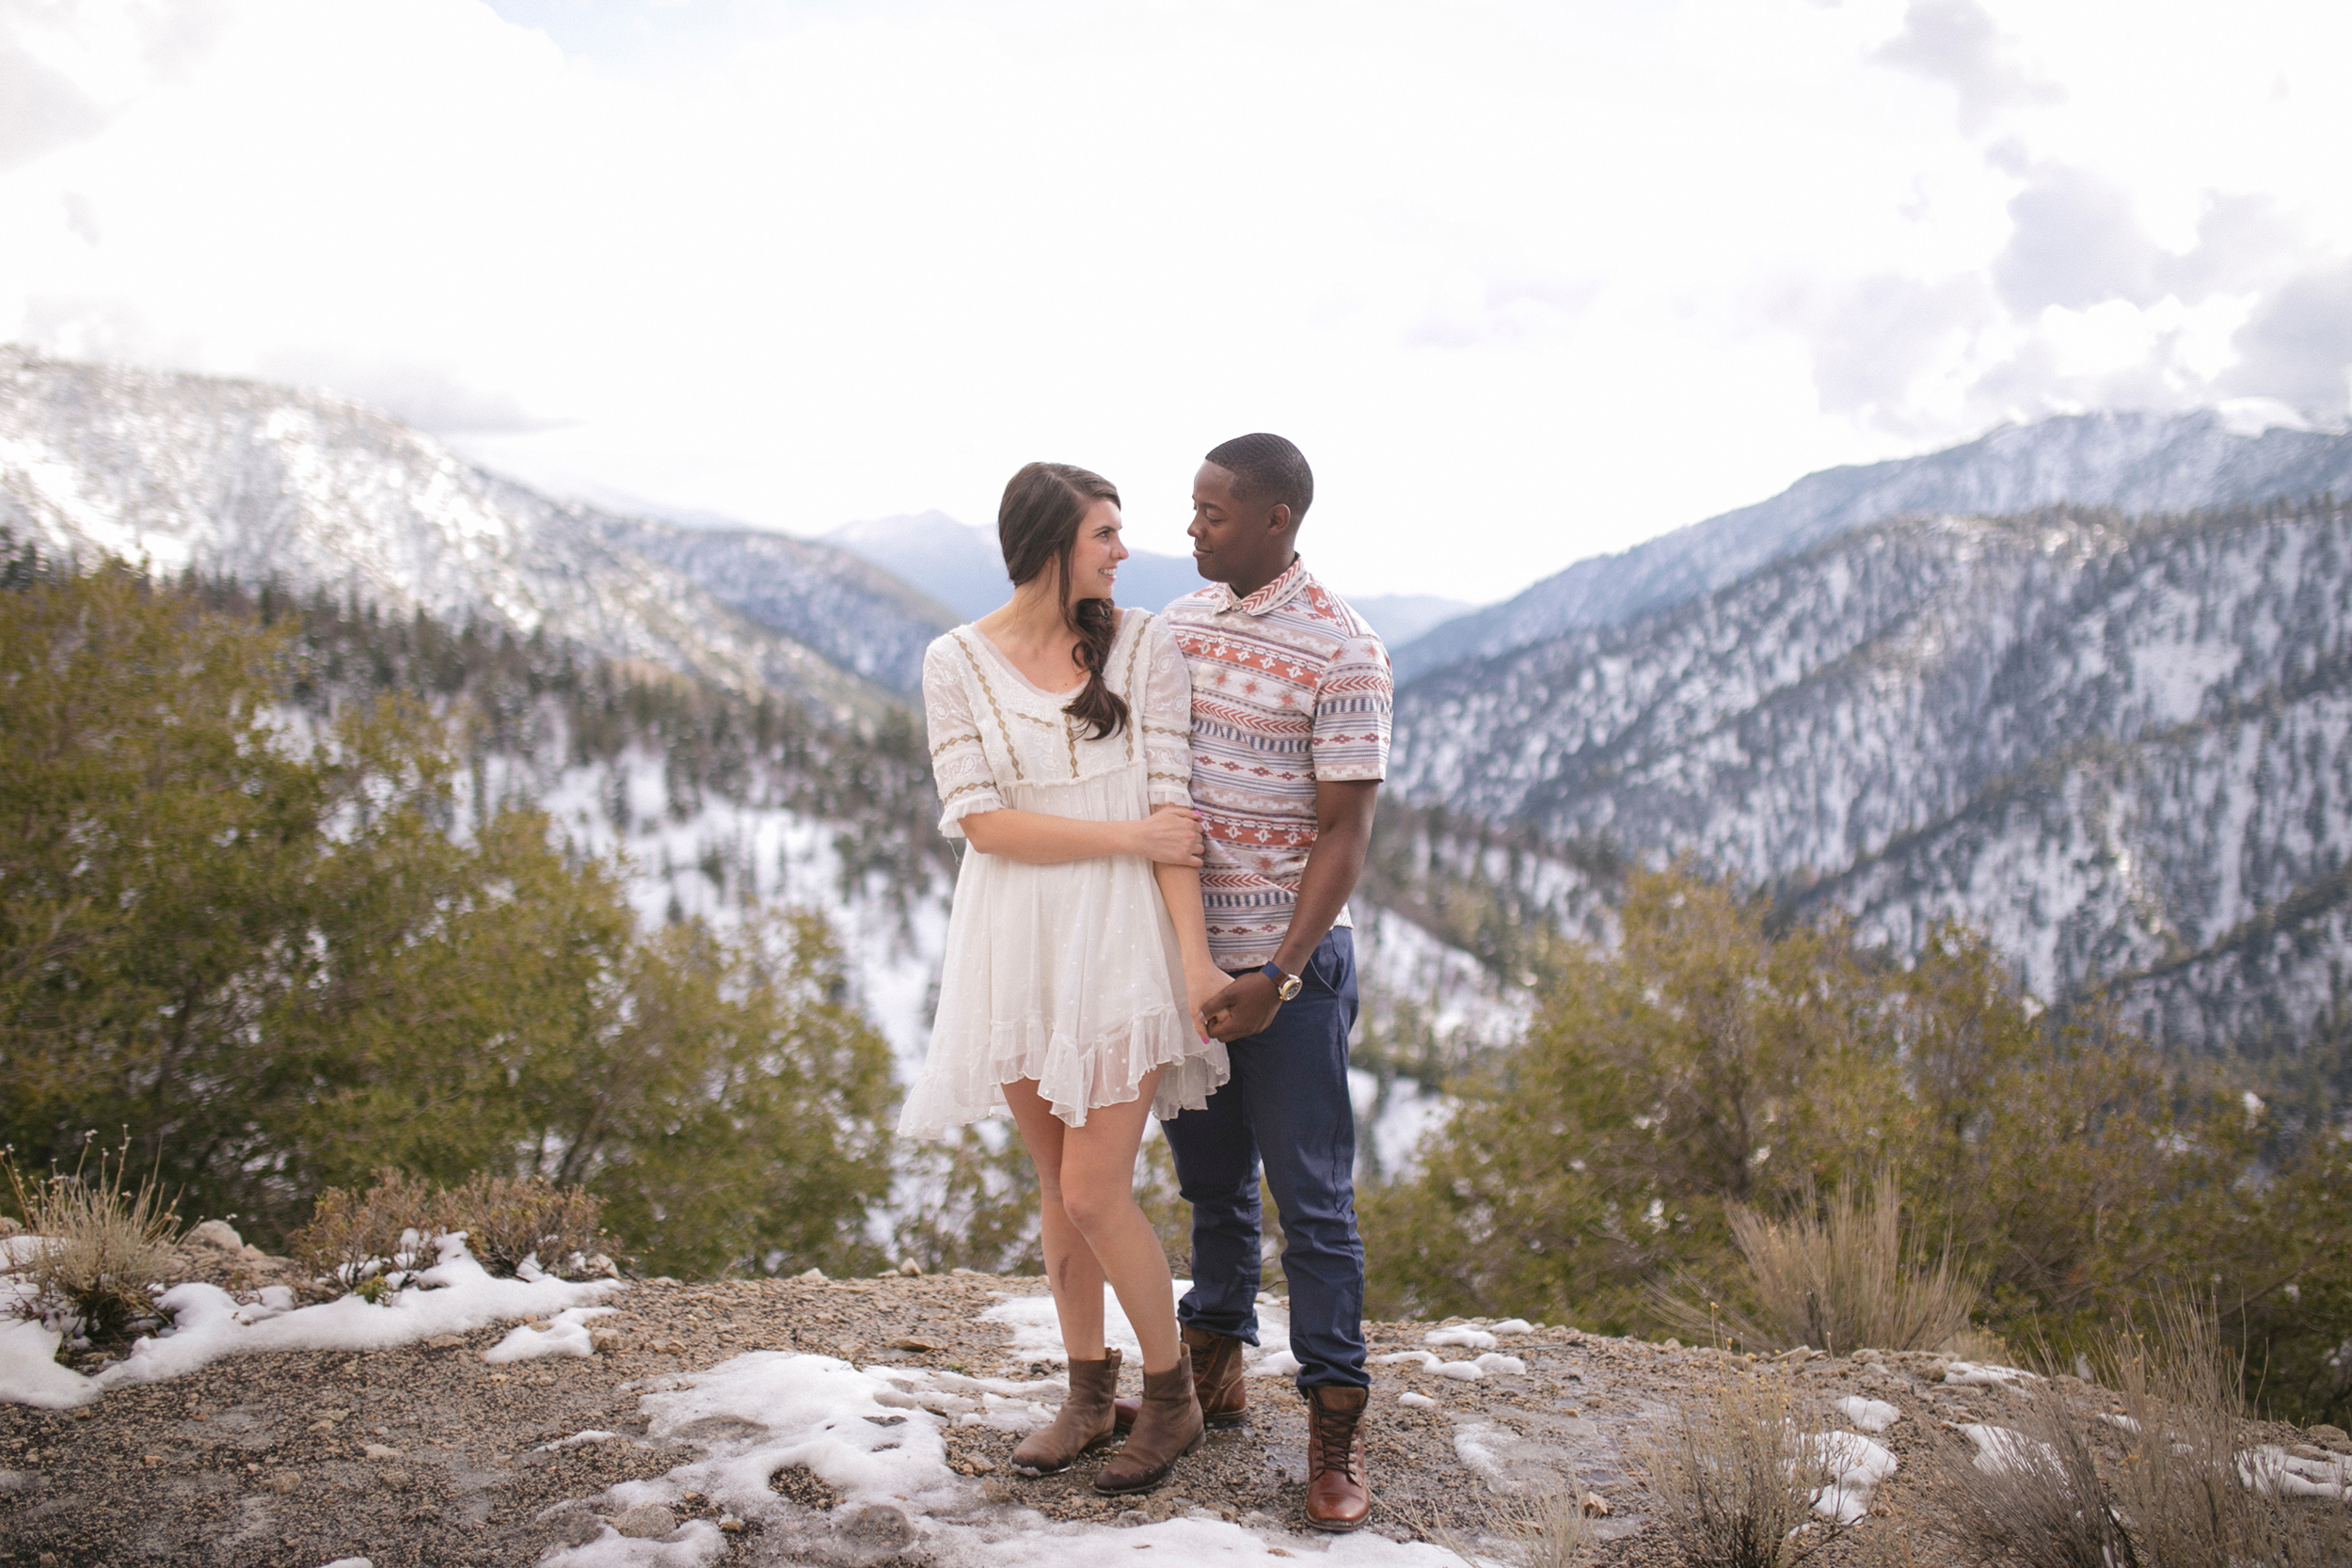 Colby-and-Jess-Adventure-Engagement-Photography-Big-Bear-California215.jpg